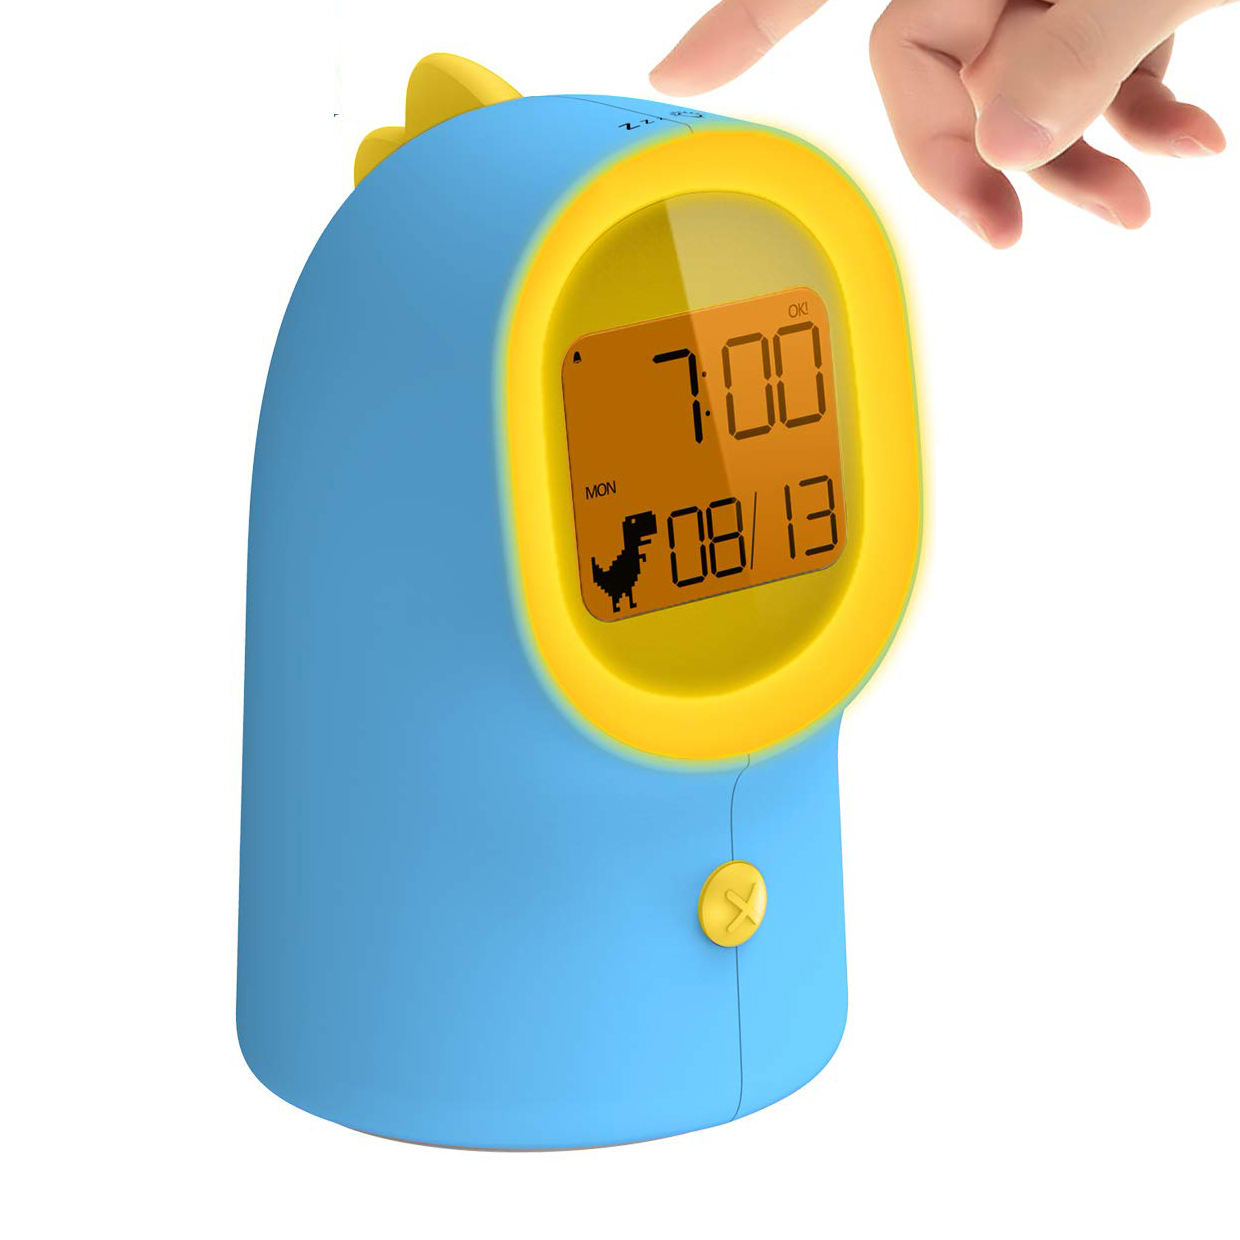 Children Alarm Clock with Night Light, Sleep Trainer for Teaching Kids Time to Wake up with 2 Rings, Digital Clock with Battery